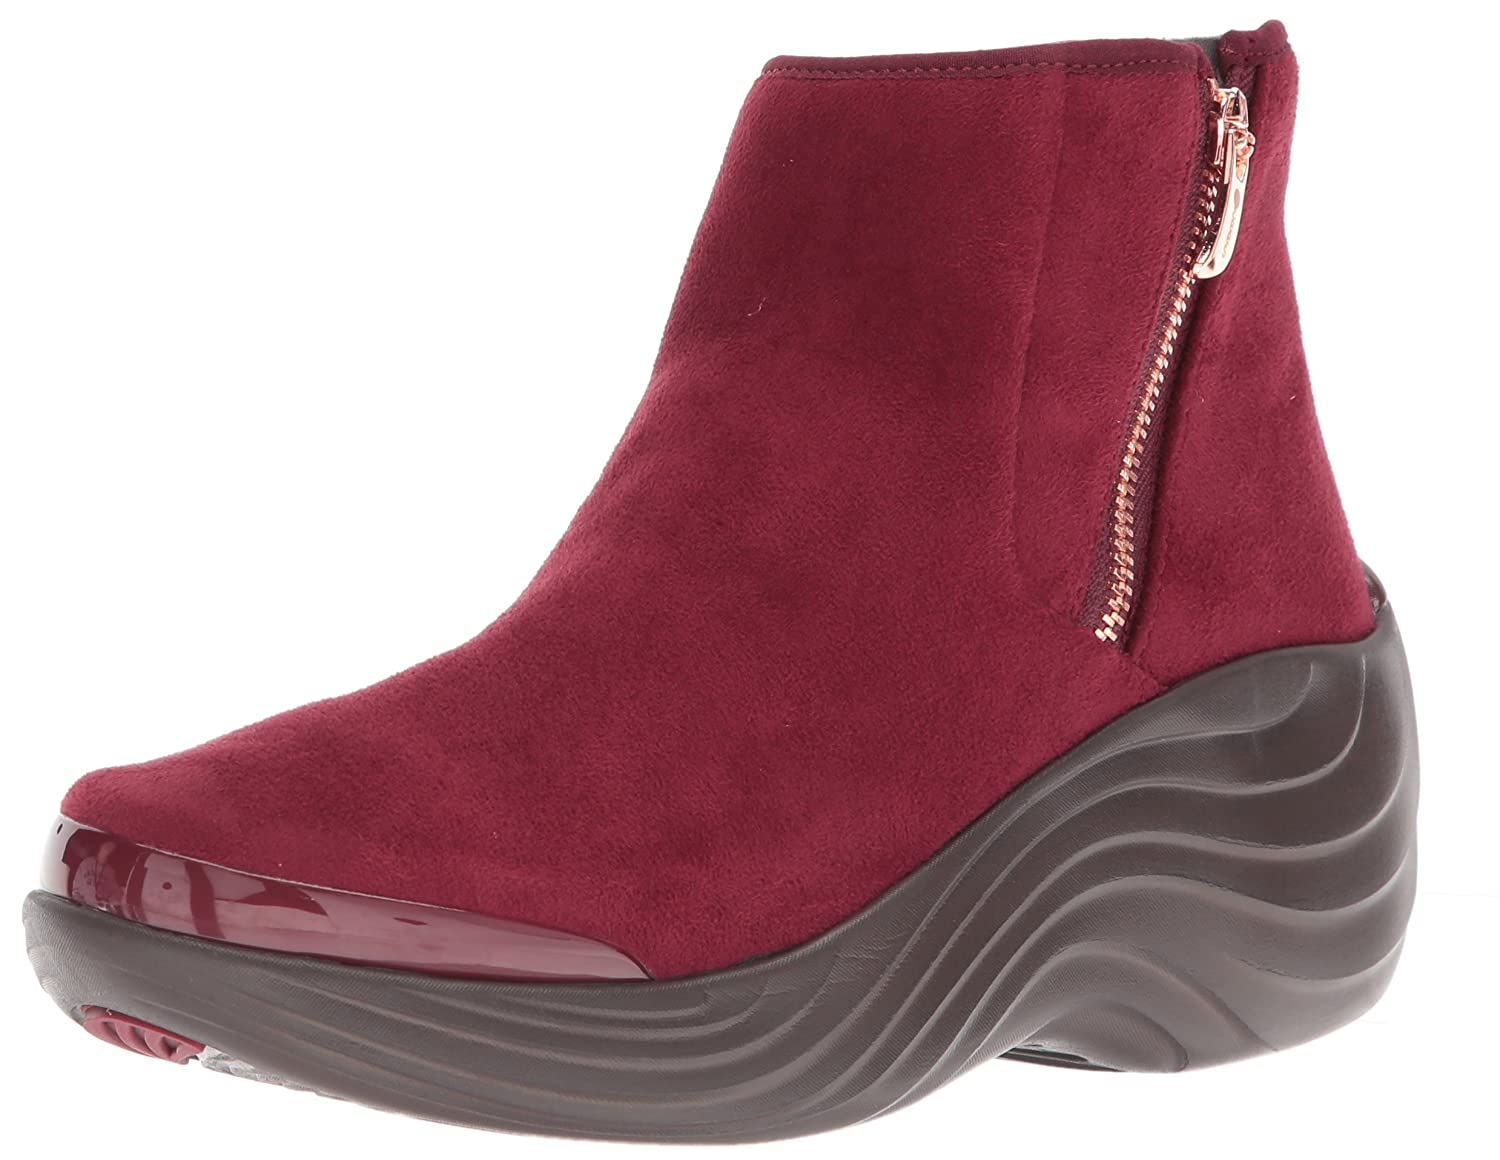 BZees Women's Zora Ankle Boot B076C1WCRS 6.5 W US|Wine